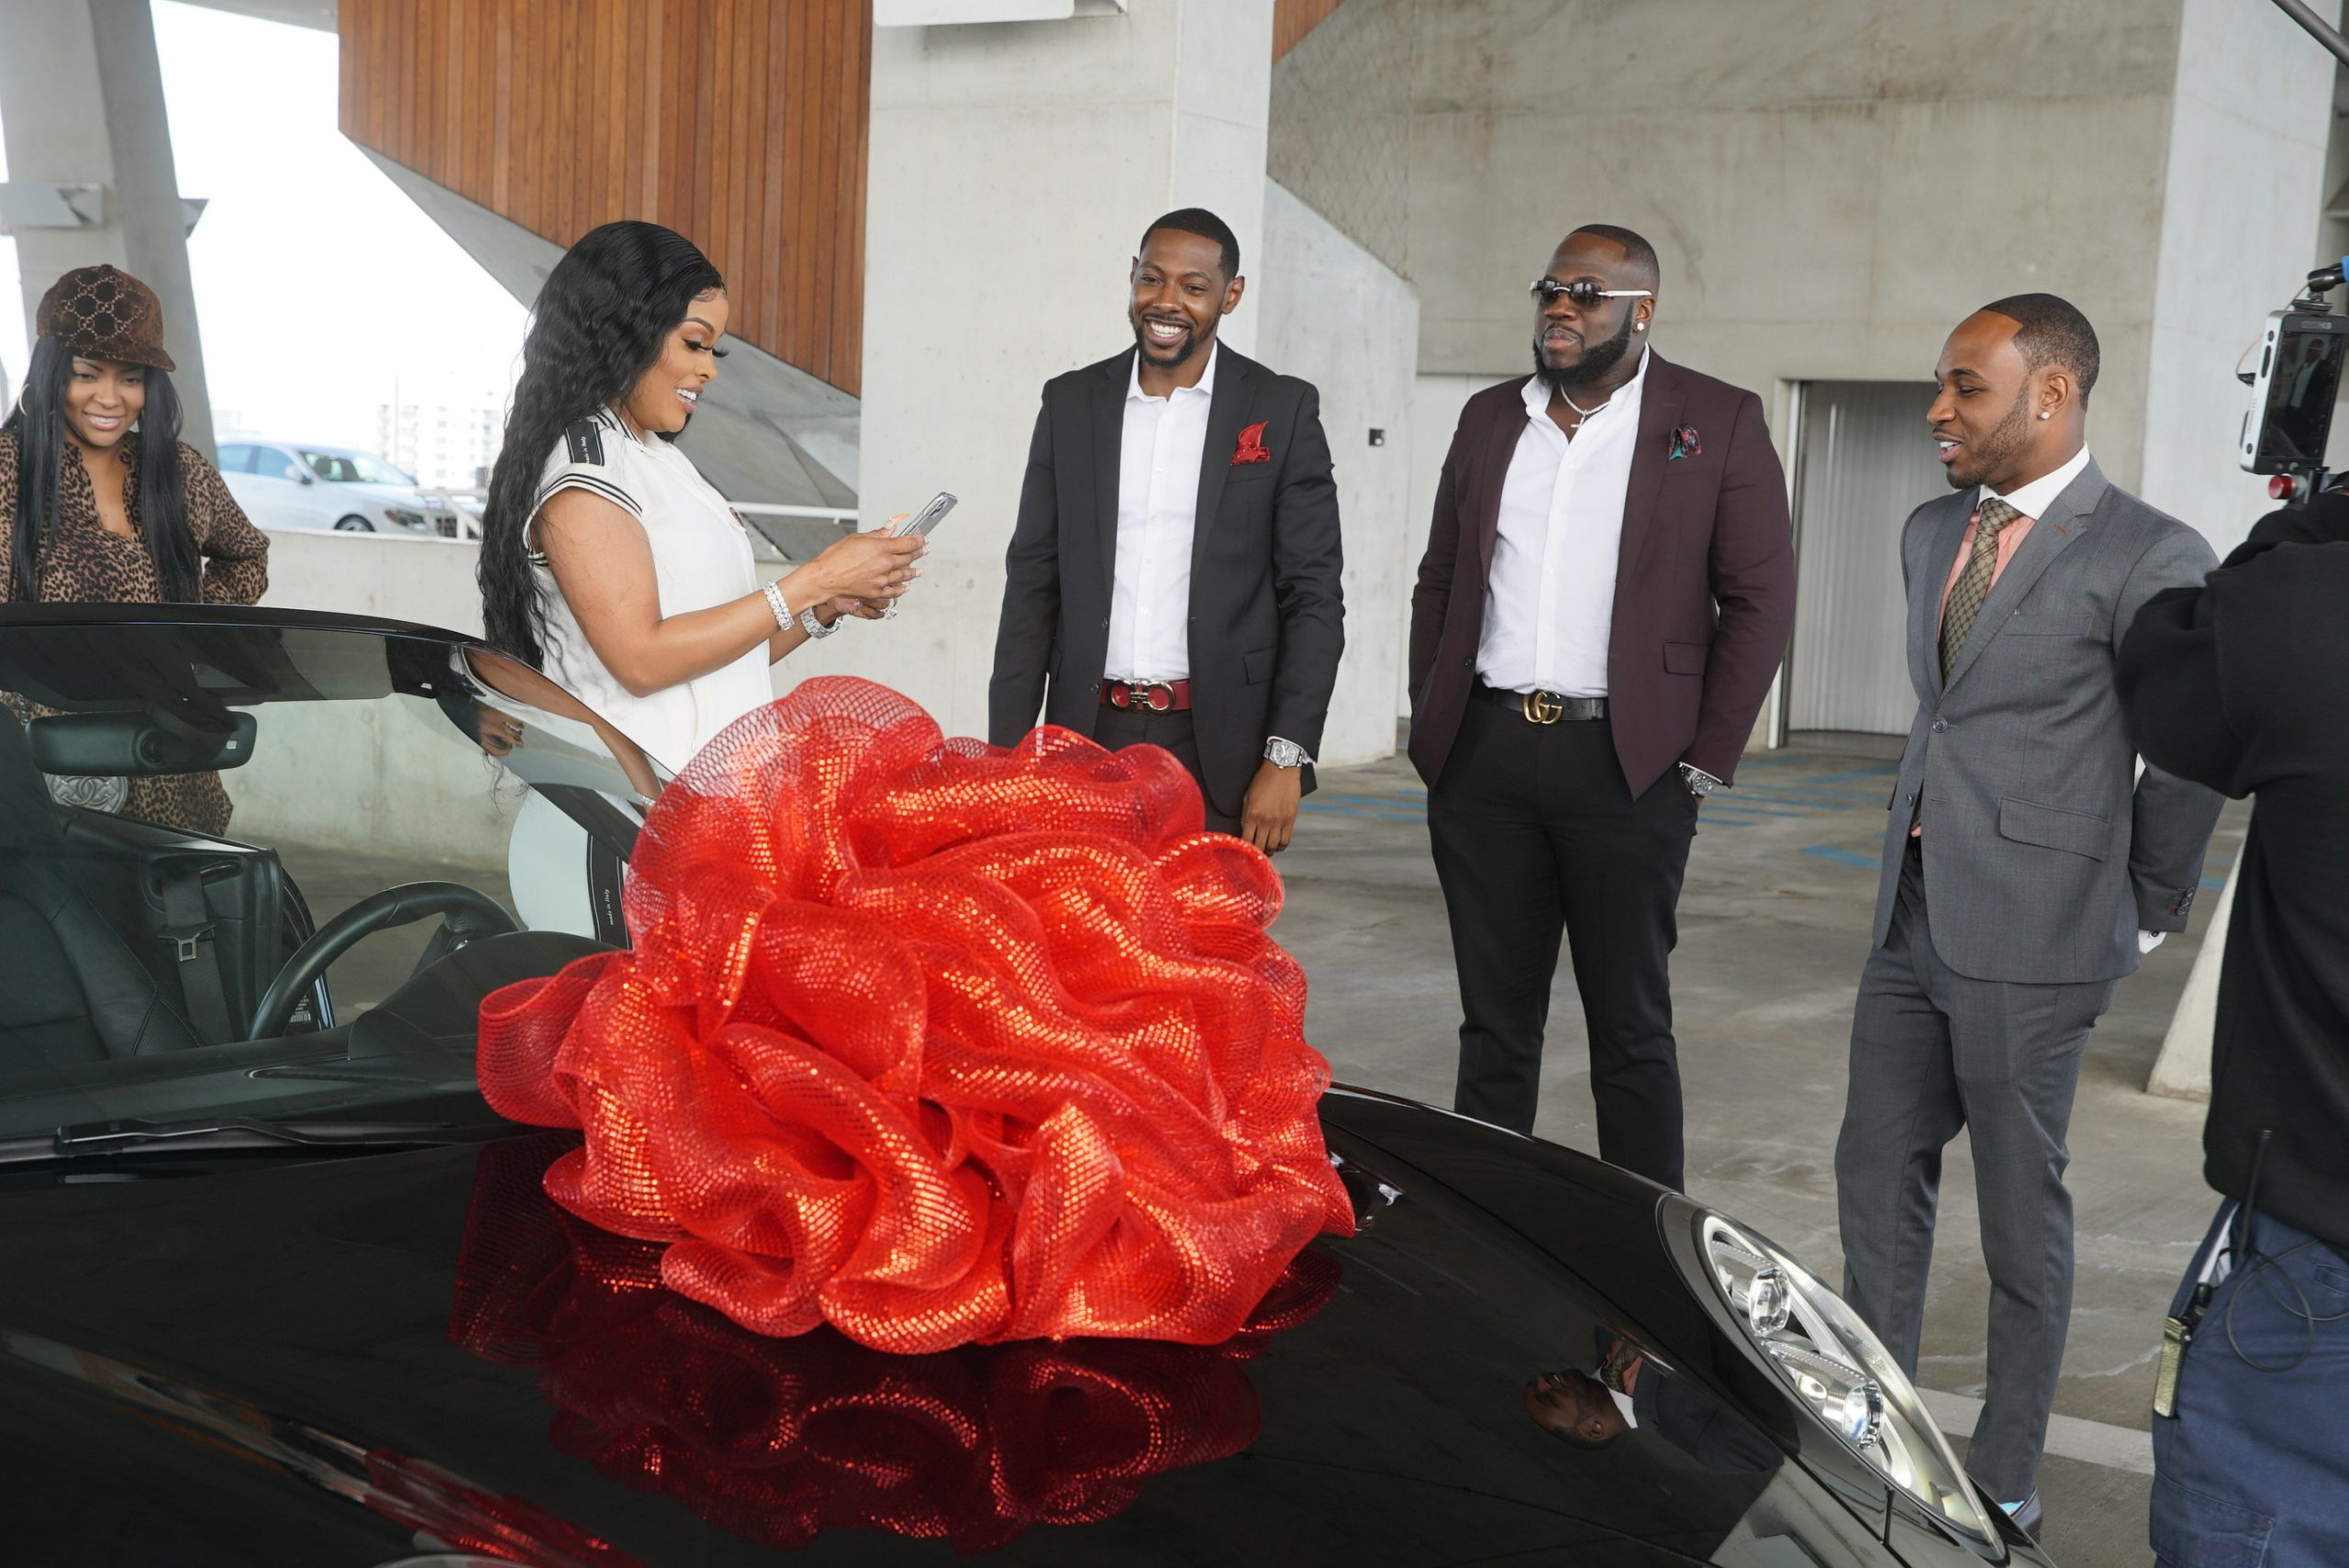 Snapchat Joins Forces With 3 Black Millenial Millionaires to Showcase Their Automotive Company, PTG365 Auto